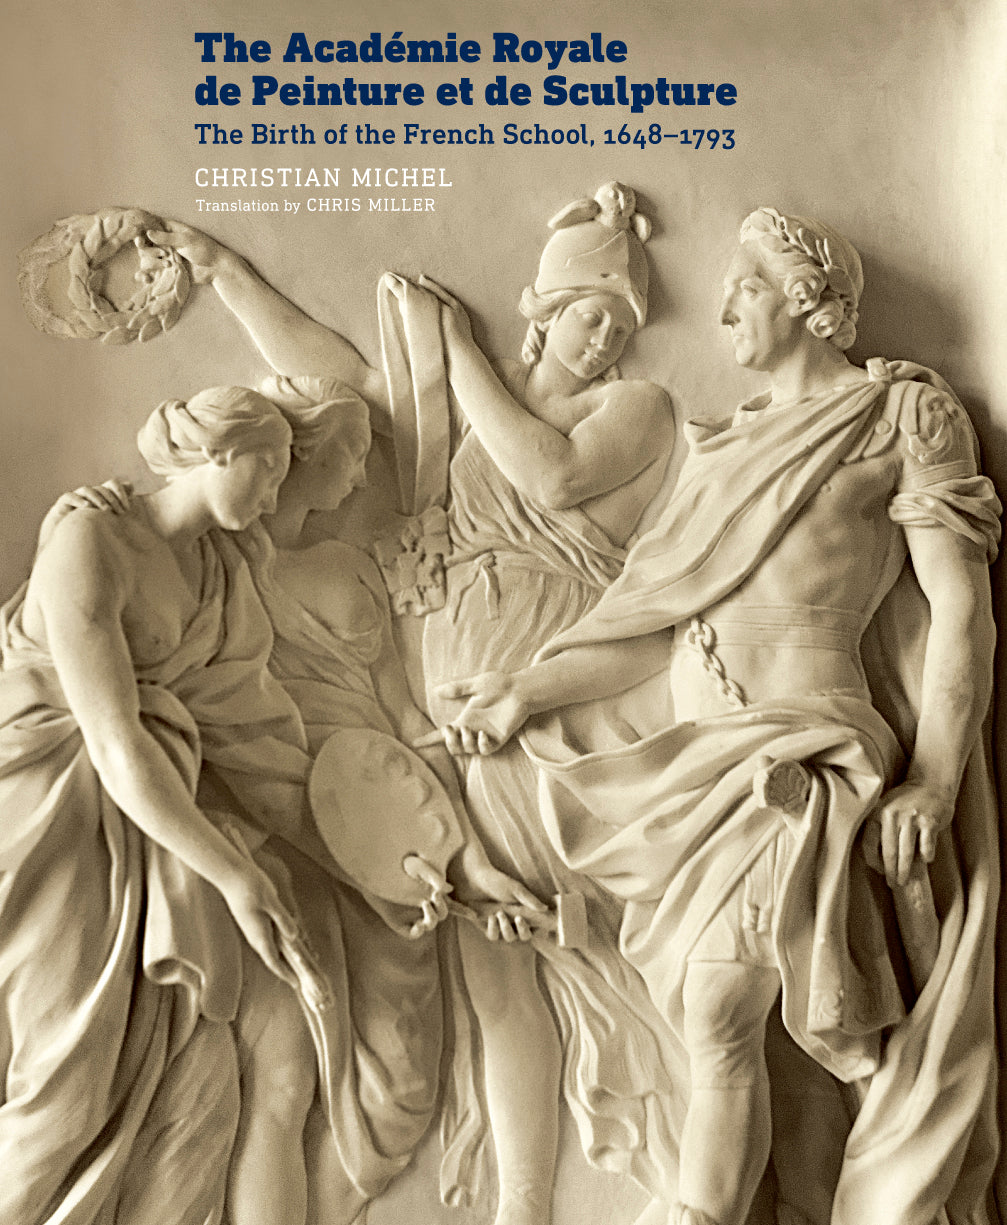 The Académie Royale de Peinture et de Sculpture: The Birth of the French School, 1648–1793